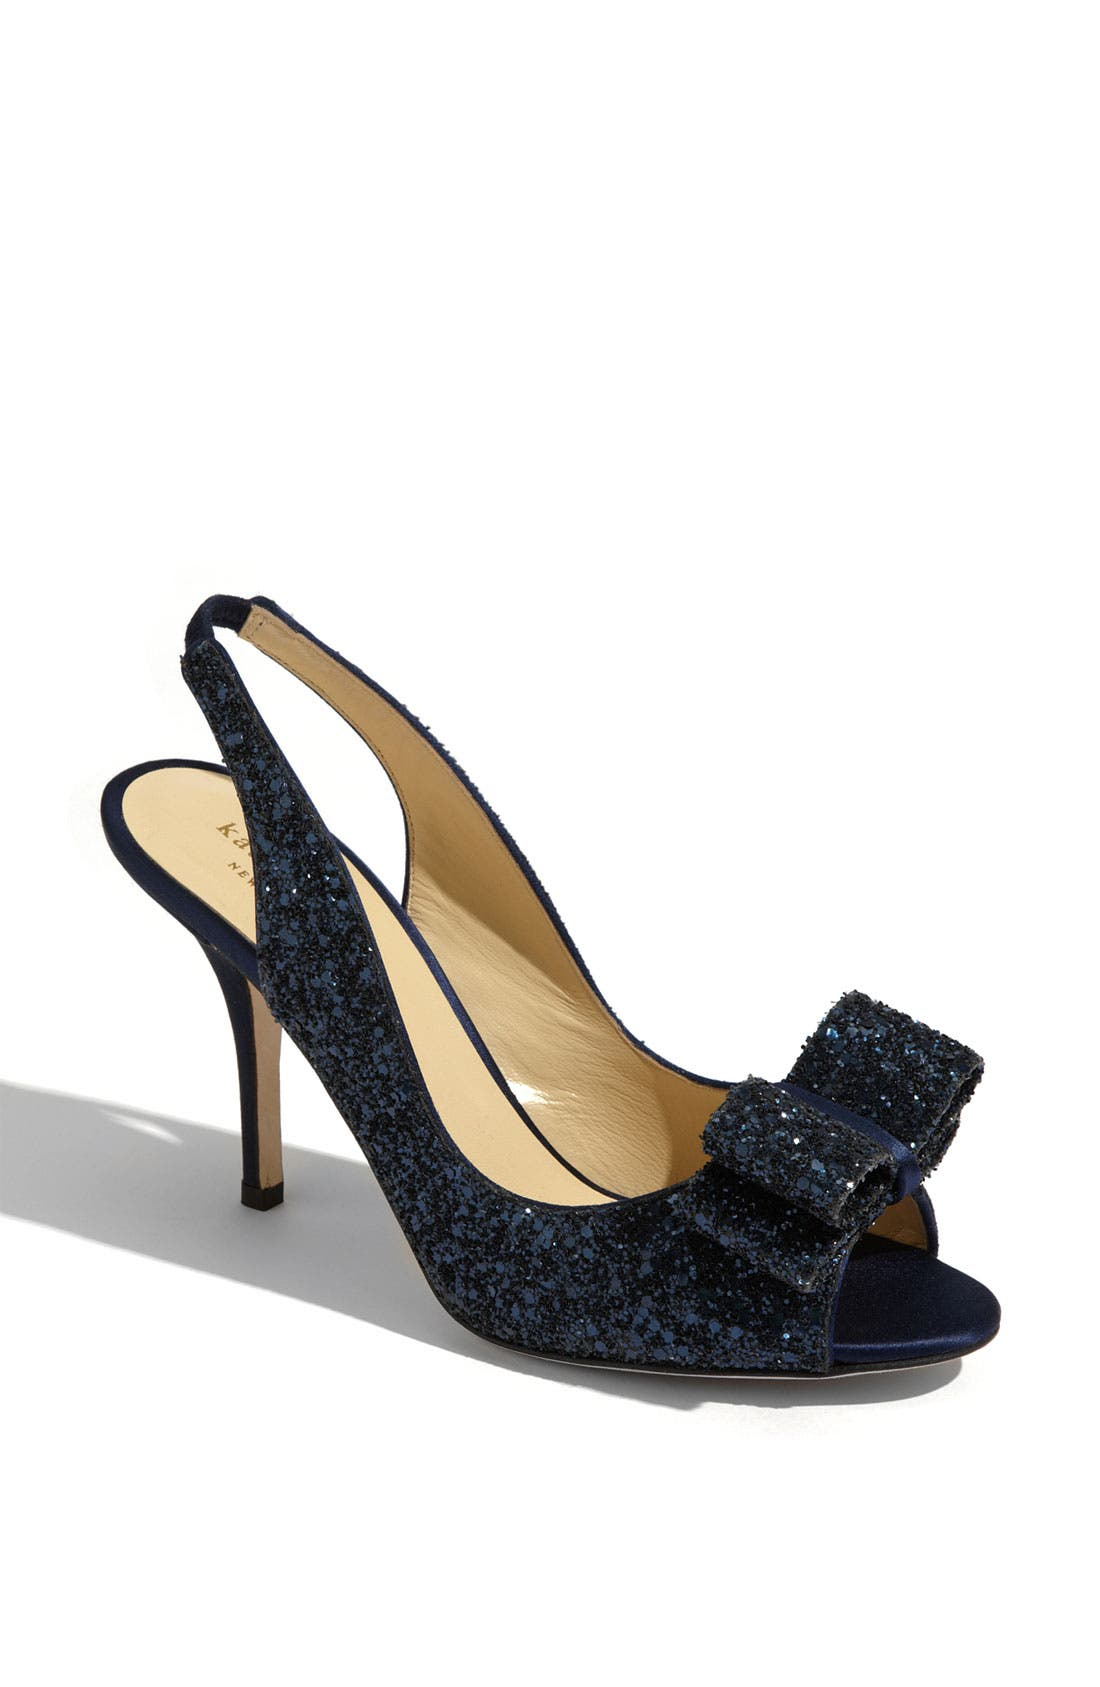 'charm' slingback pump,                             Main thumbnail 1, color,                             NAVY GLITTER